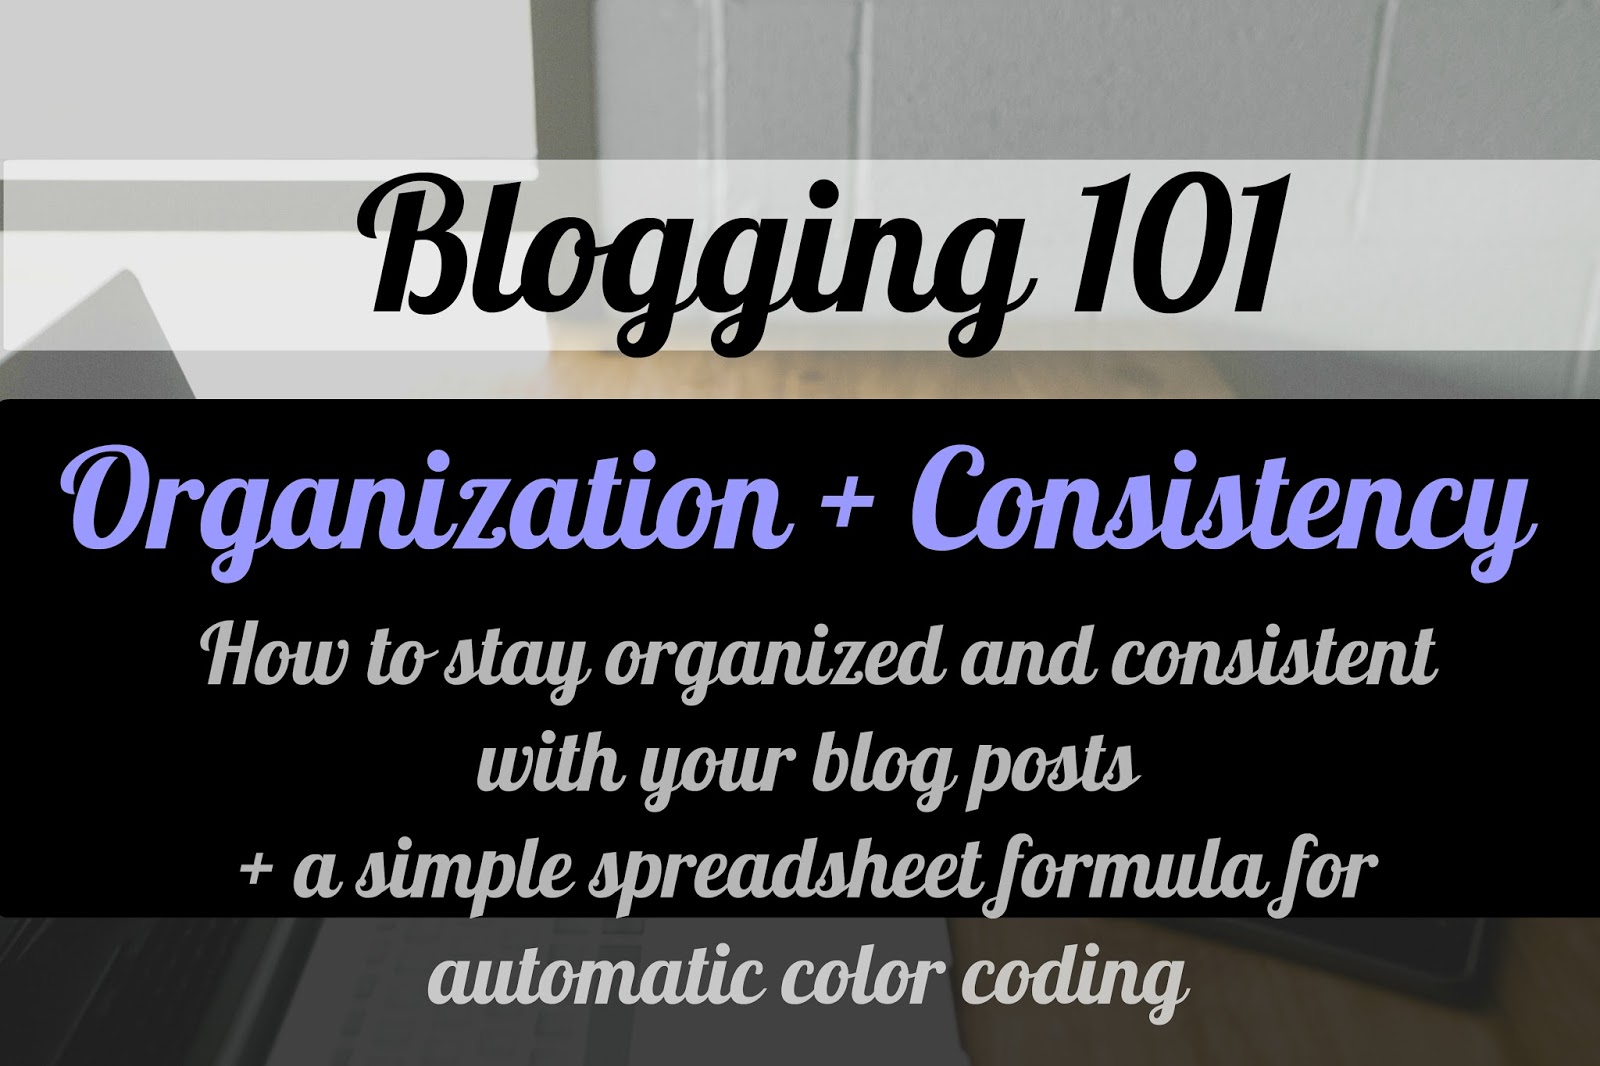 Blogging 101 How to stay organized and consistent